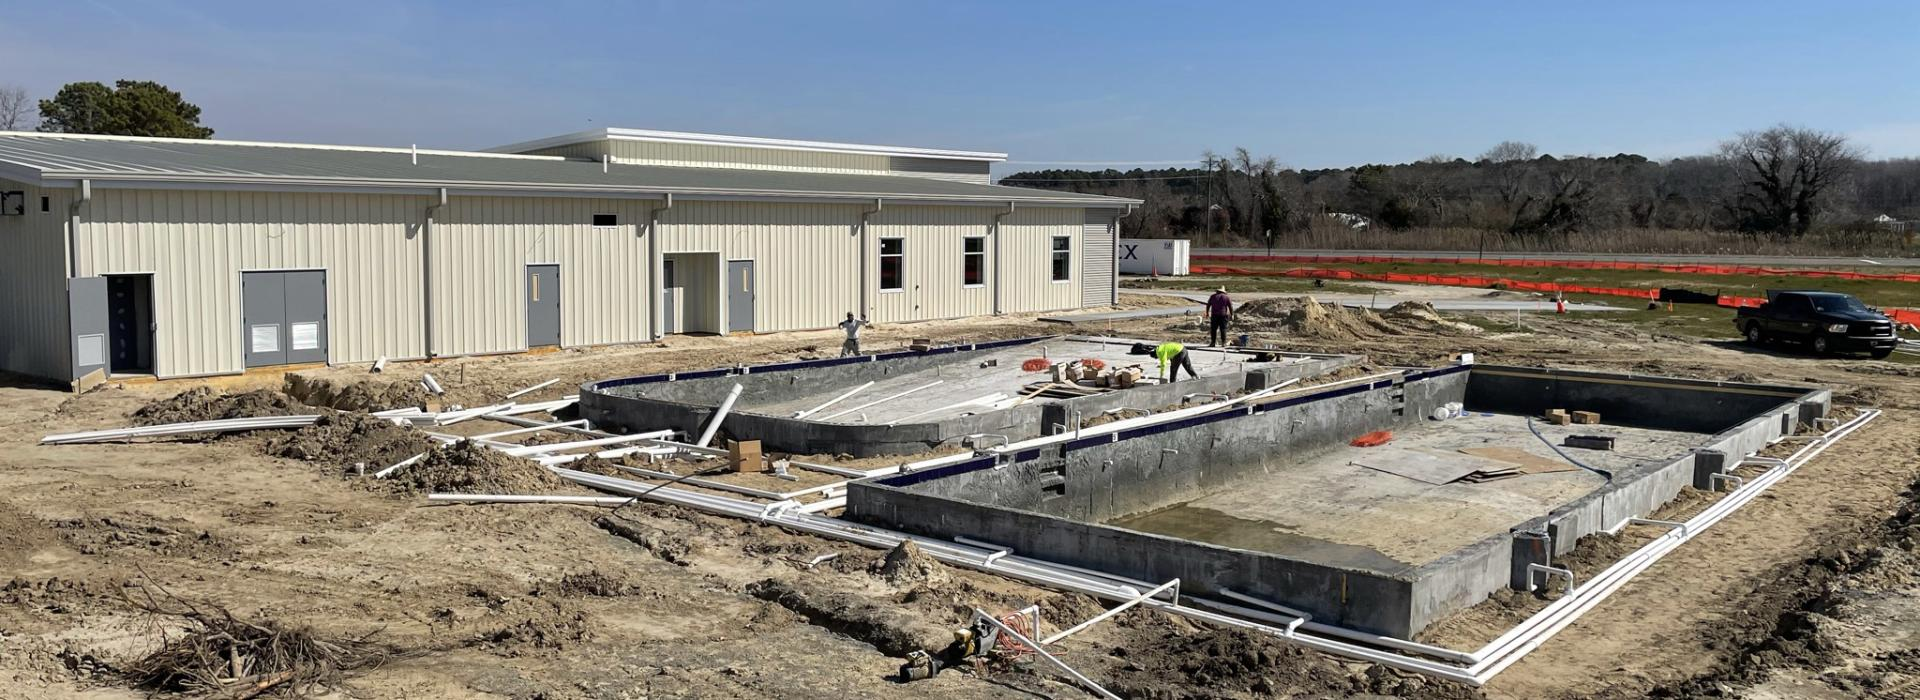 Exterior side view of the Northampton County YMCA with concrete poured for the swimming pools